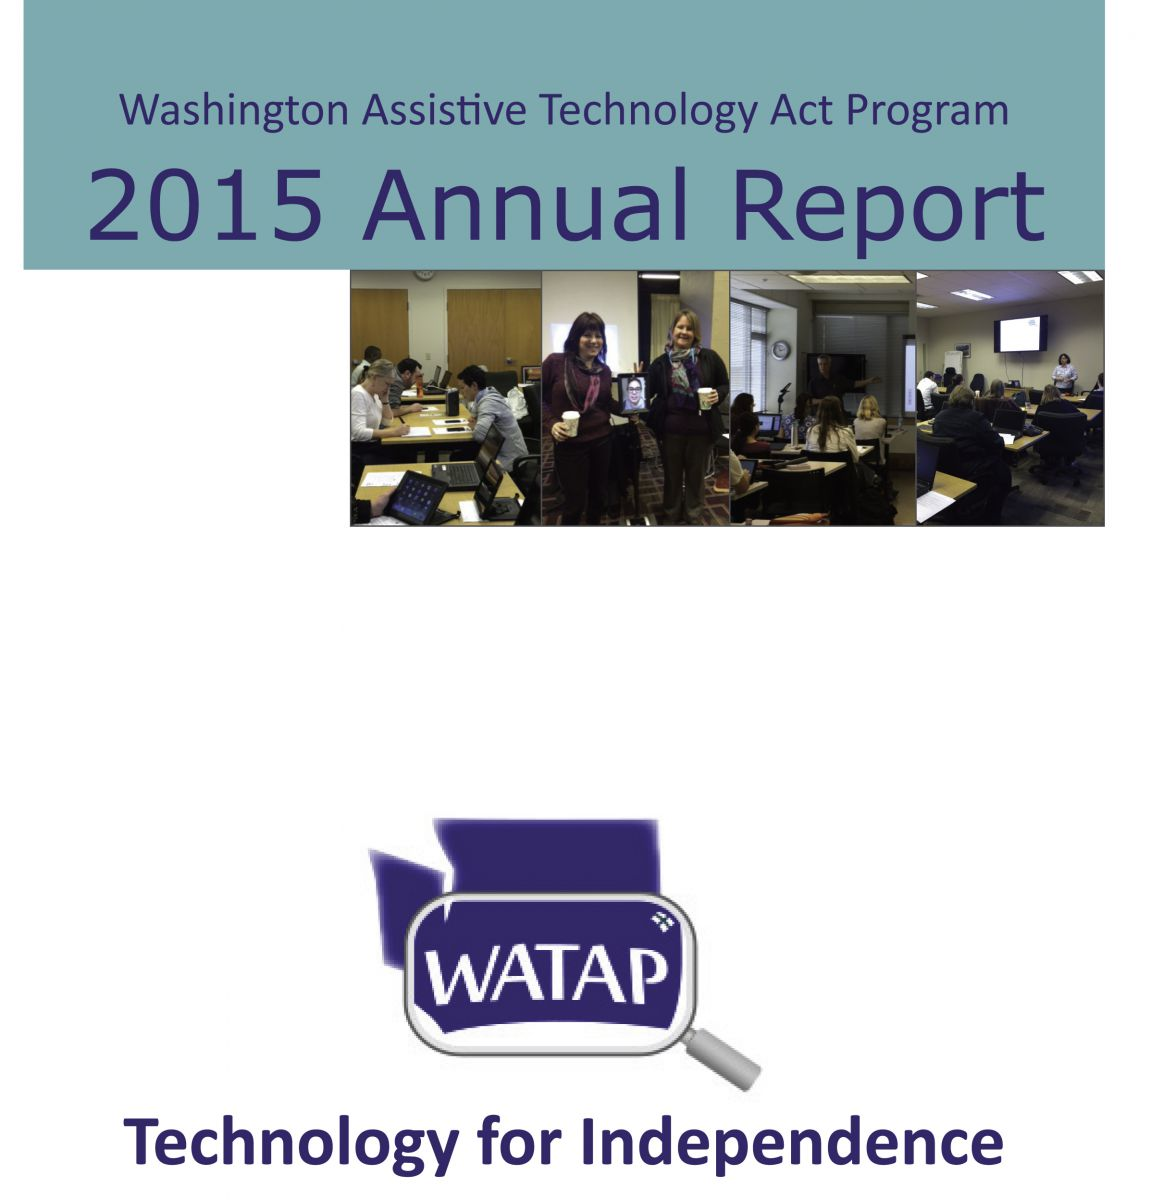 WATAP Annual Report for 2015